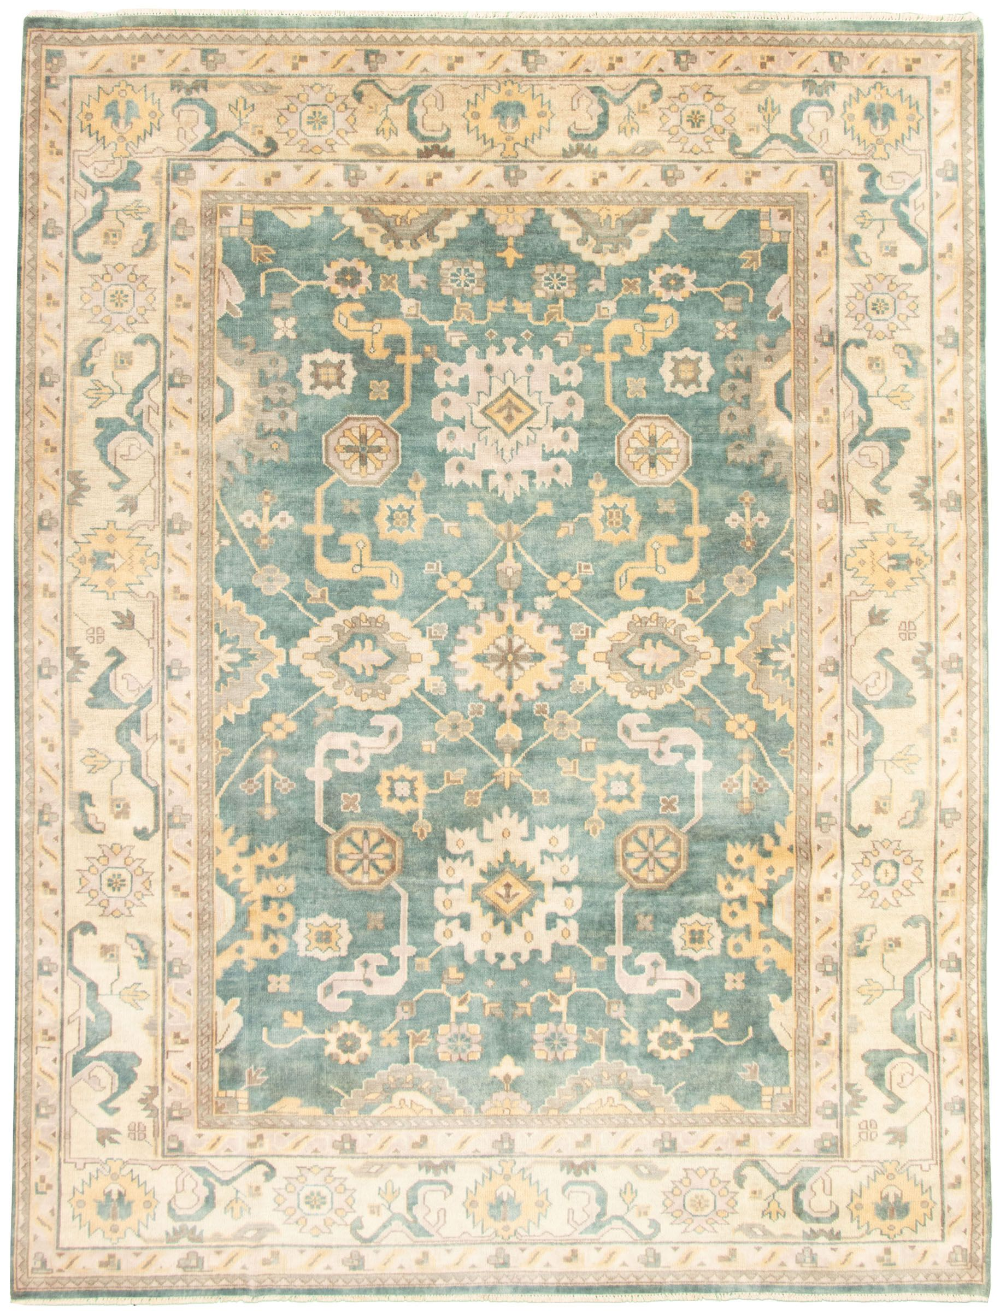 Indian Royal Ushak 9 0 Green Rug Traditional Style Rugs Rugs Hand knotted wool rugs from india